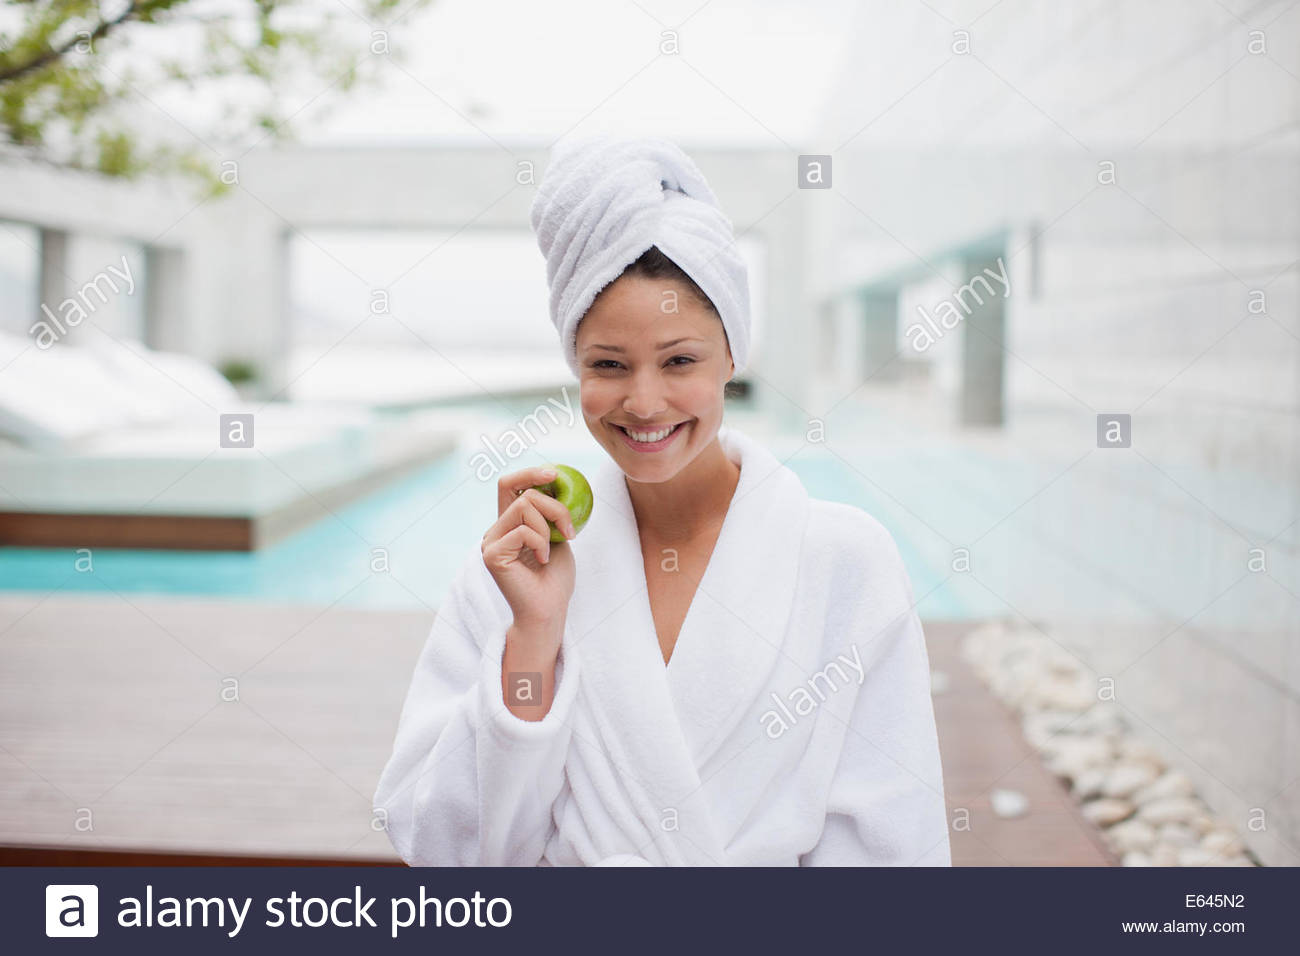 Woman with head wrapped in towel eating apple at poolside - Stock Image